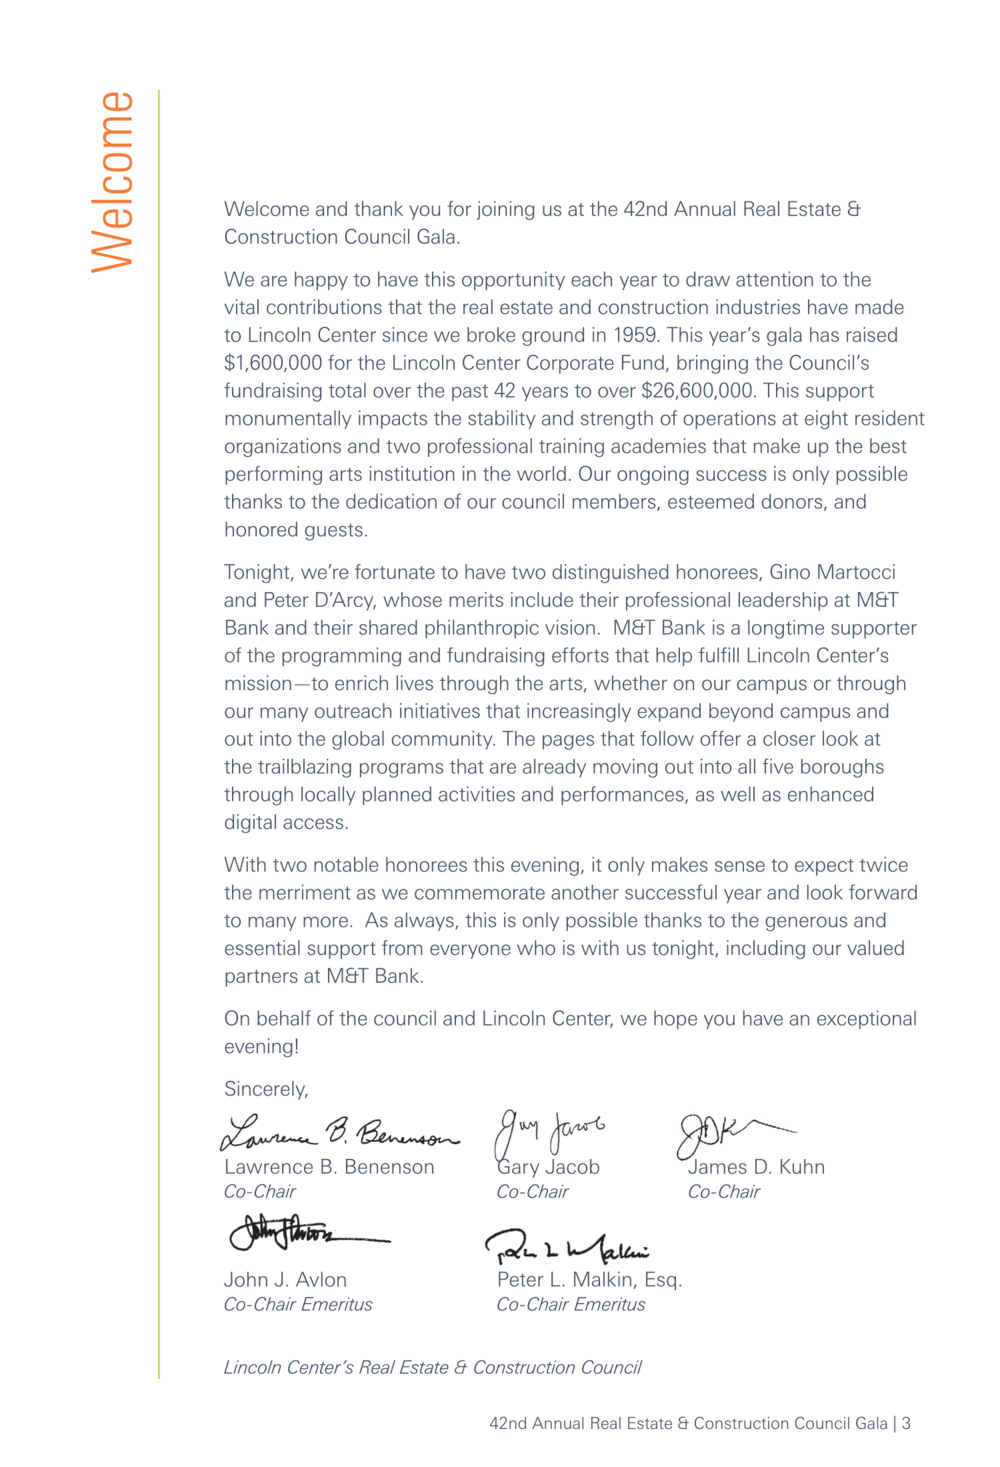 fundraising letters stack-3.png